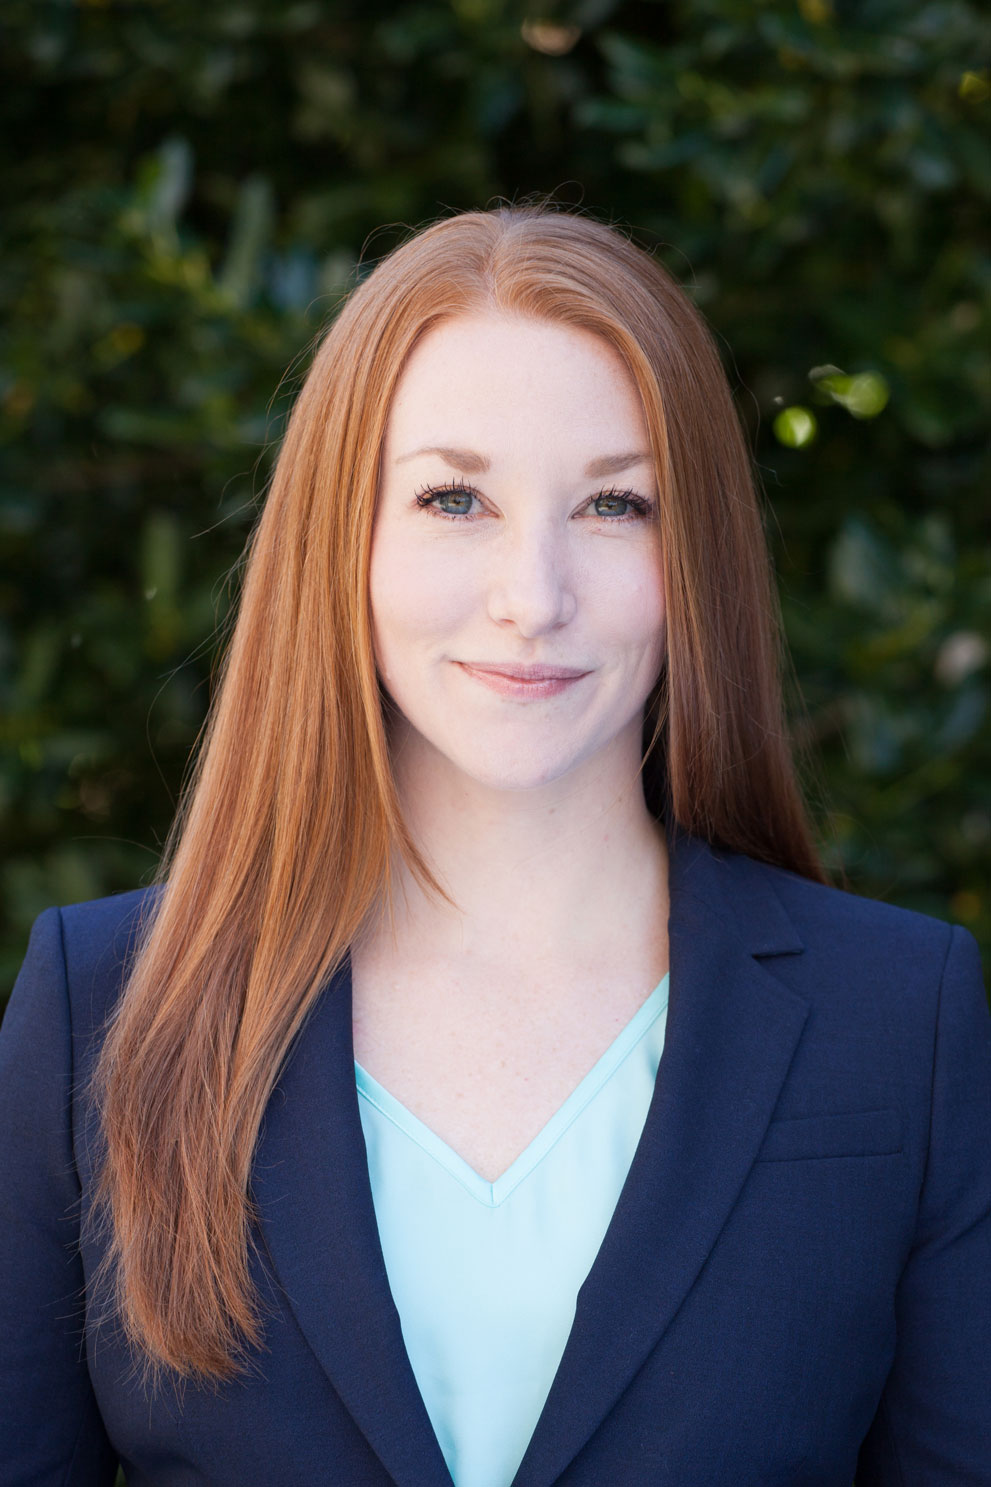 Photo of Leslie Malkiewicz, Legal and Compliance specialist